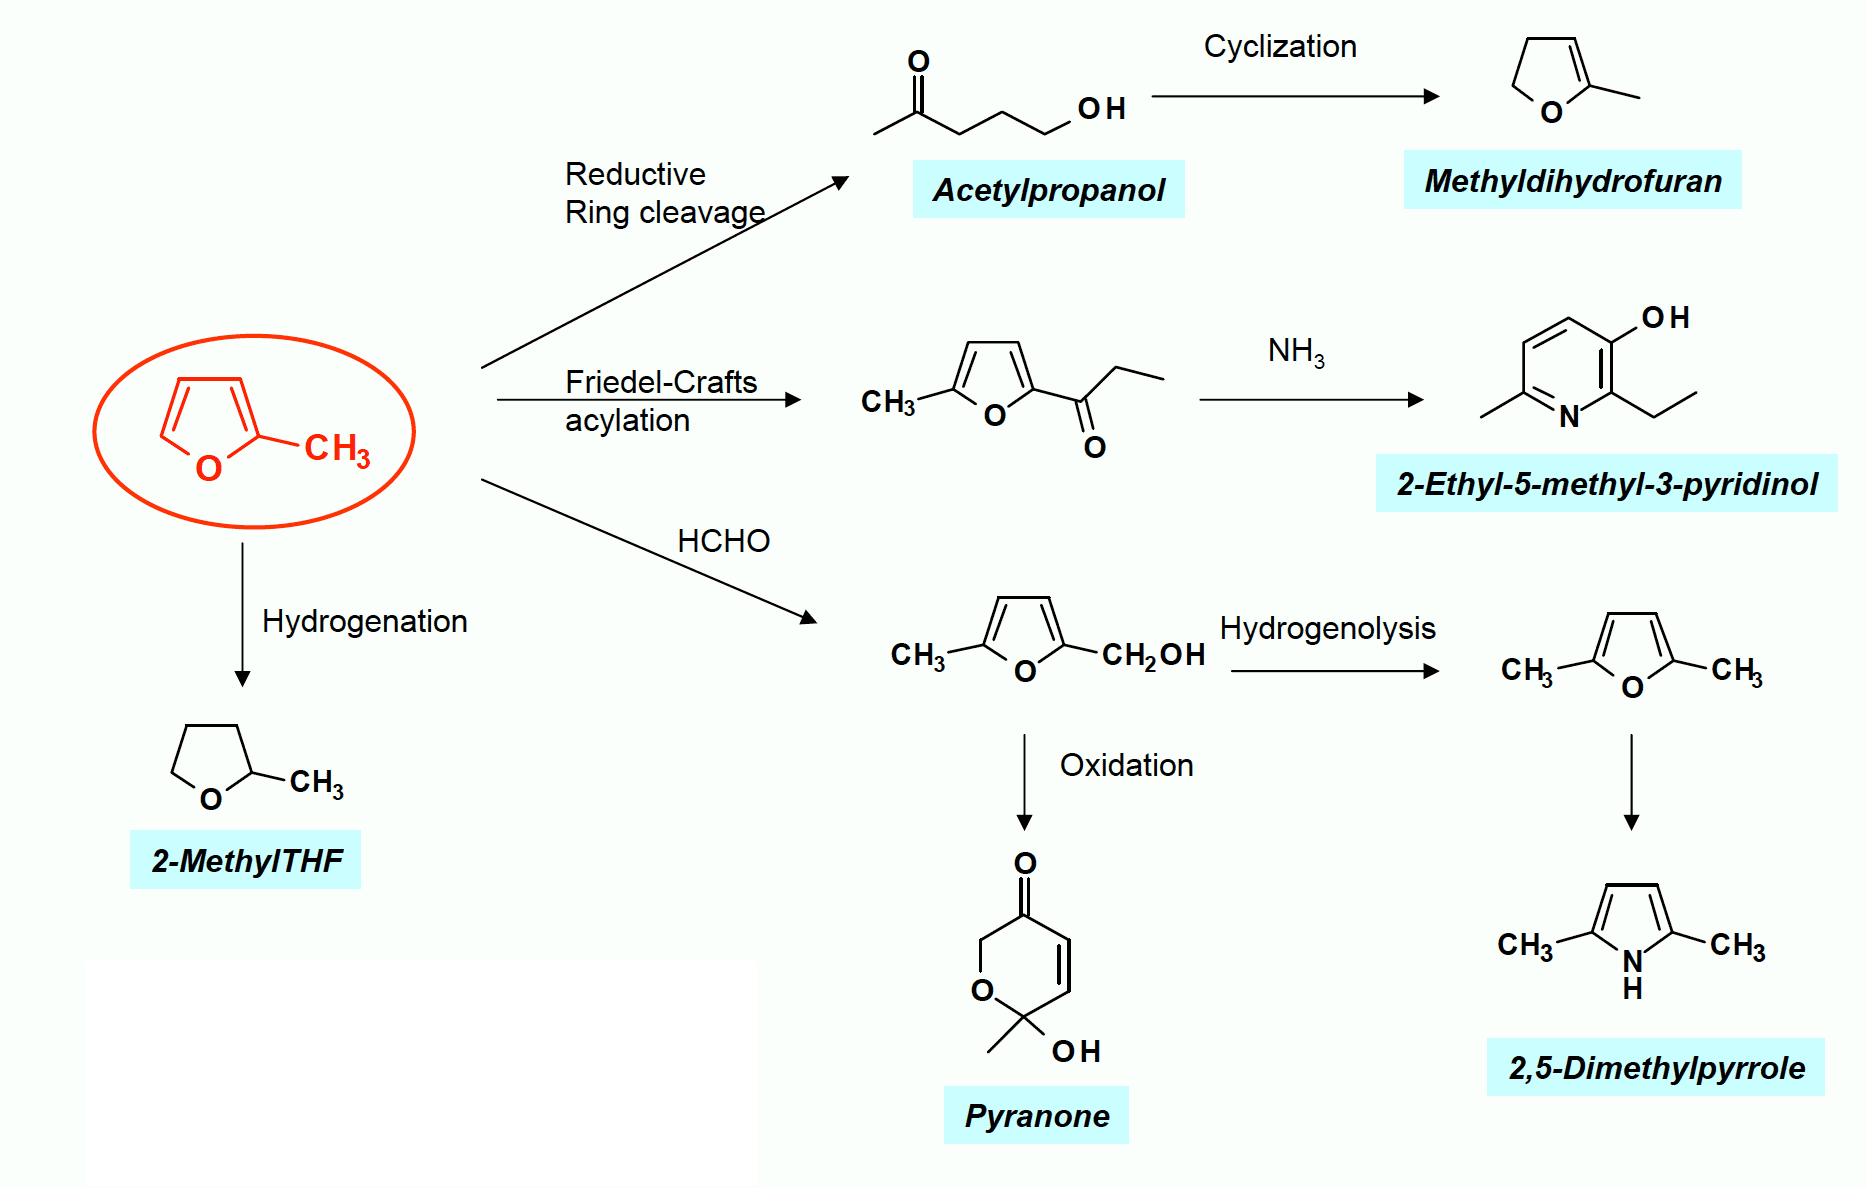 2-Methylfuran Tree